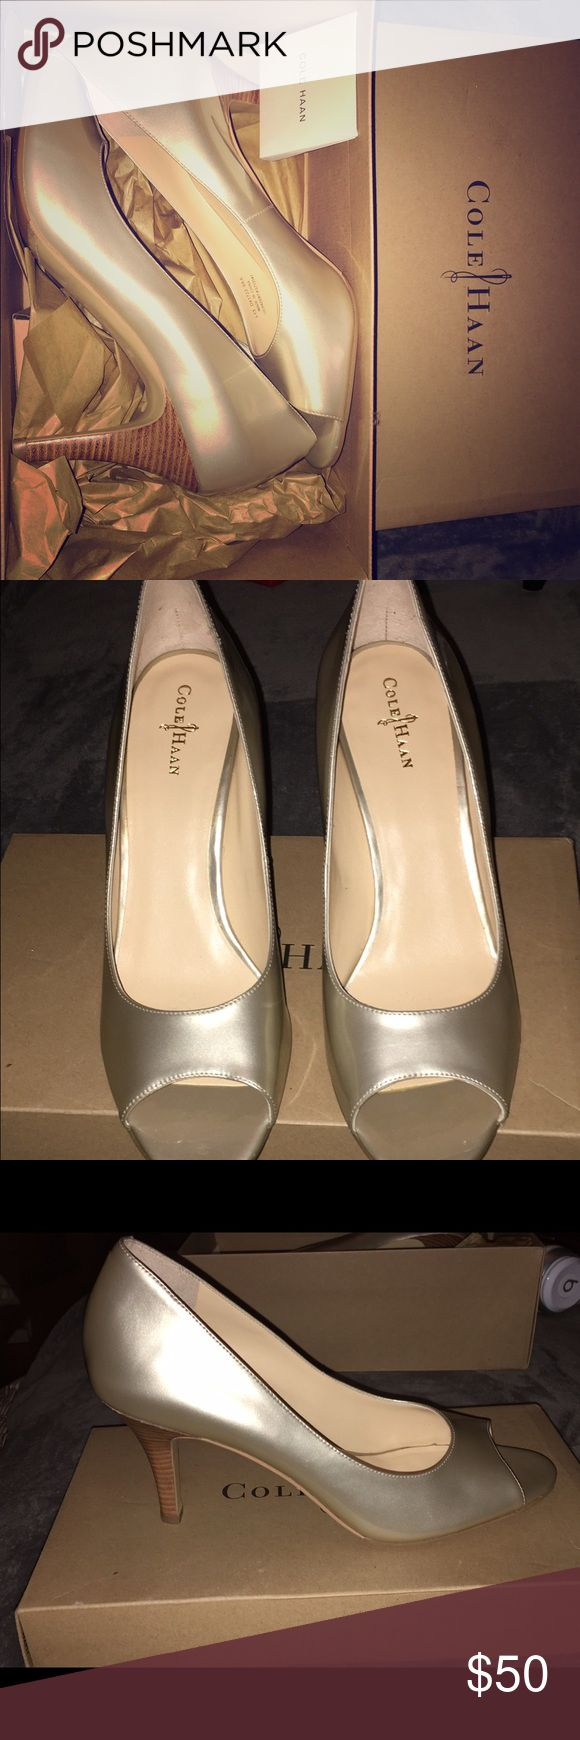 Cole Haan gold Lainey pumps - size 9 AA Super cute Cole Haan metallic leather pump - never been worn. Nike Air technology soles size 9 AA (narrow width) Cole Haan Shoes Heels